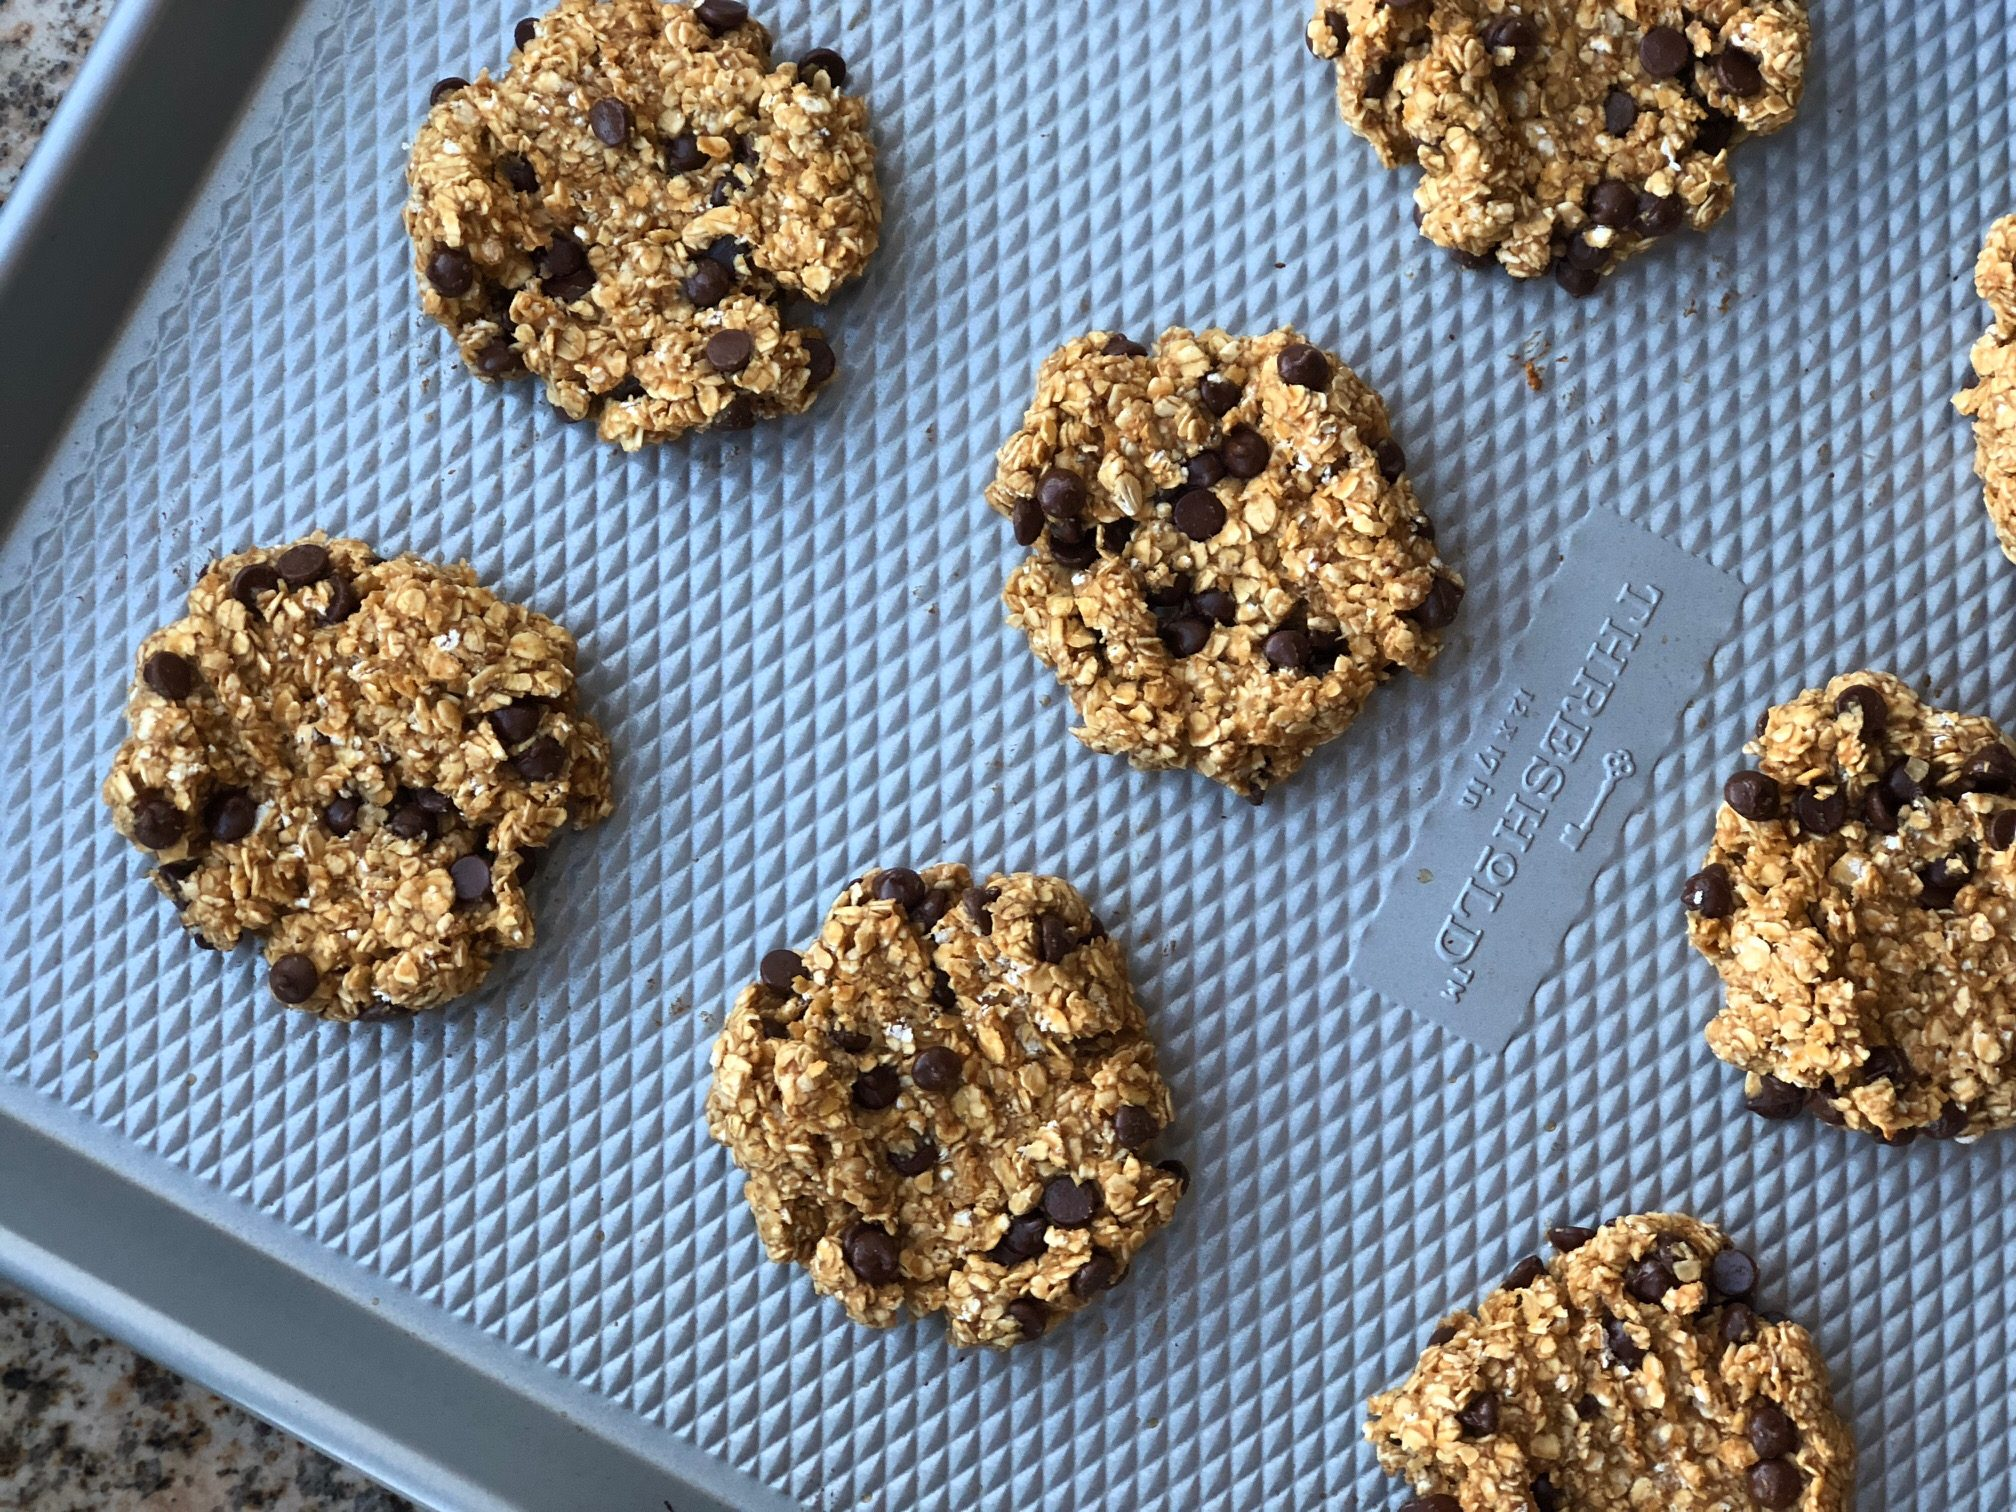 Foodie Friday: Peanut Butter Oatmeal Breakfast Cookie